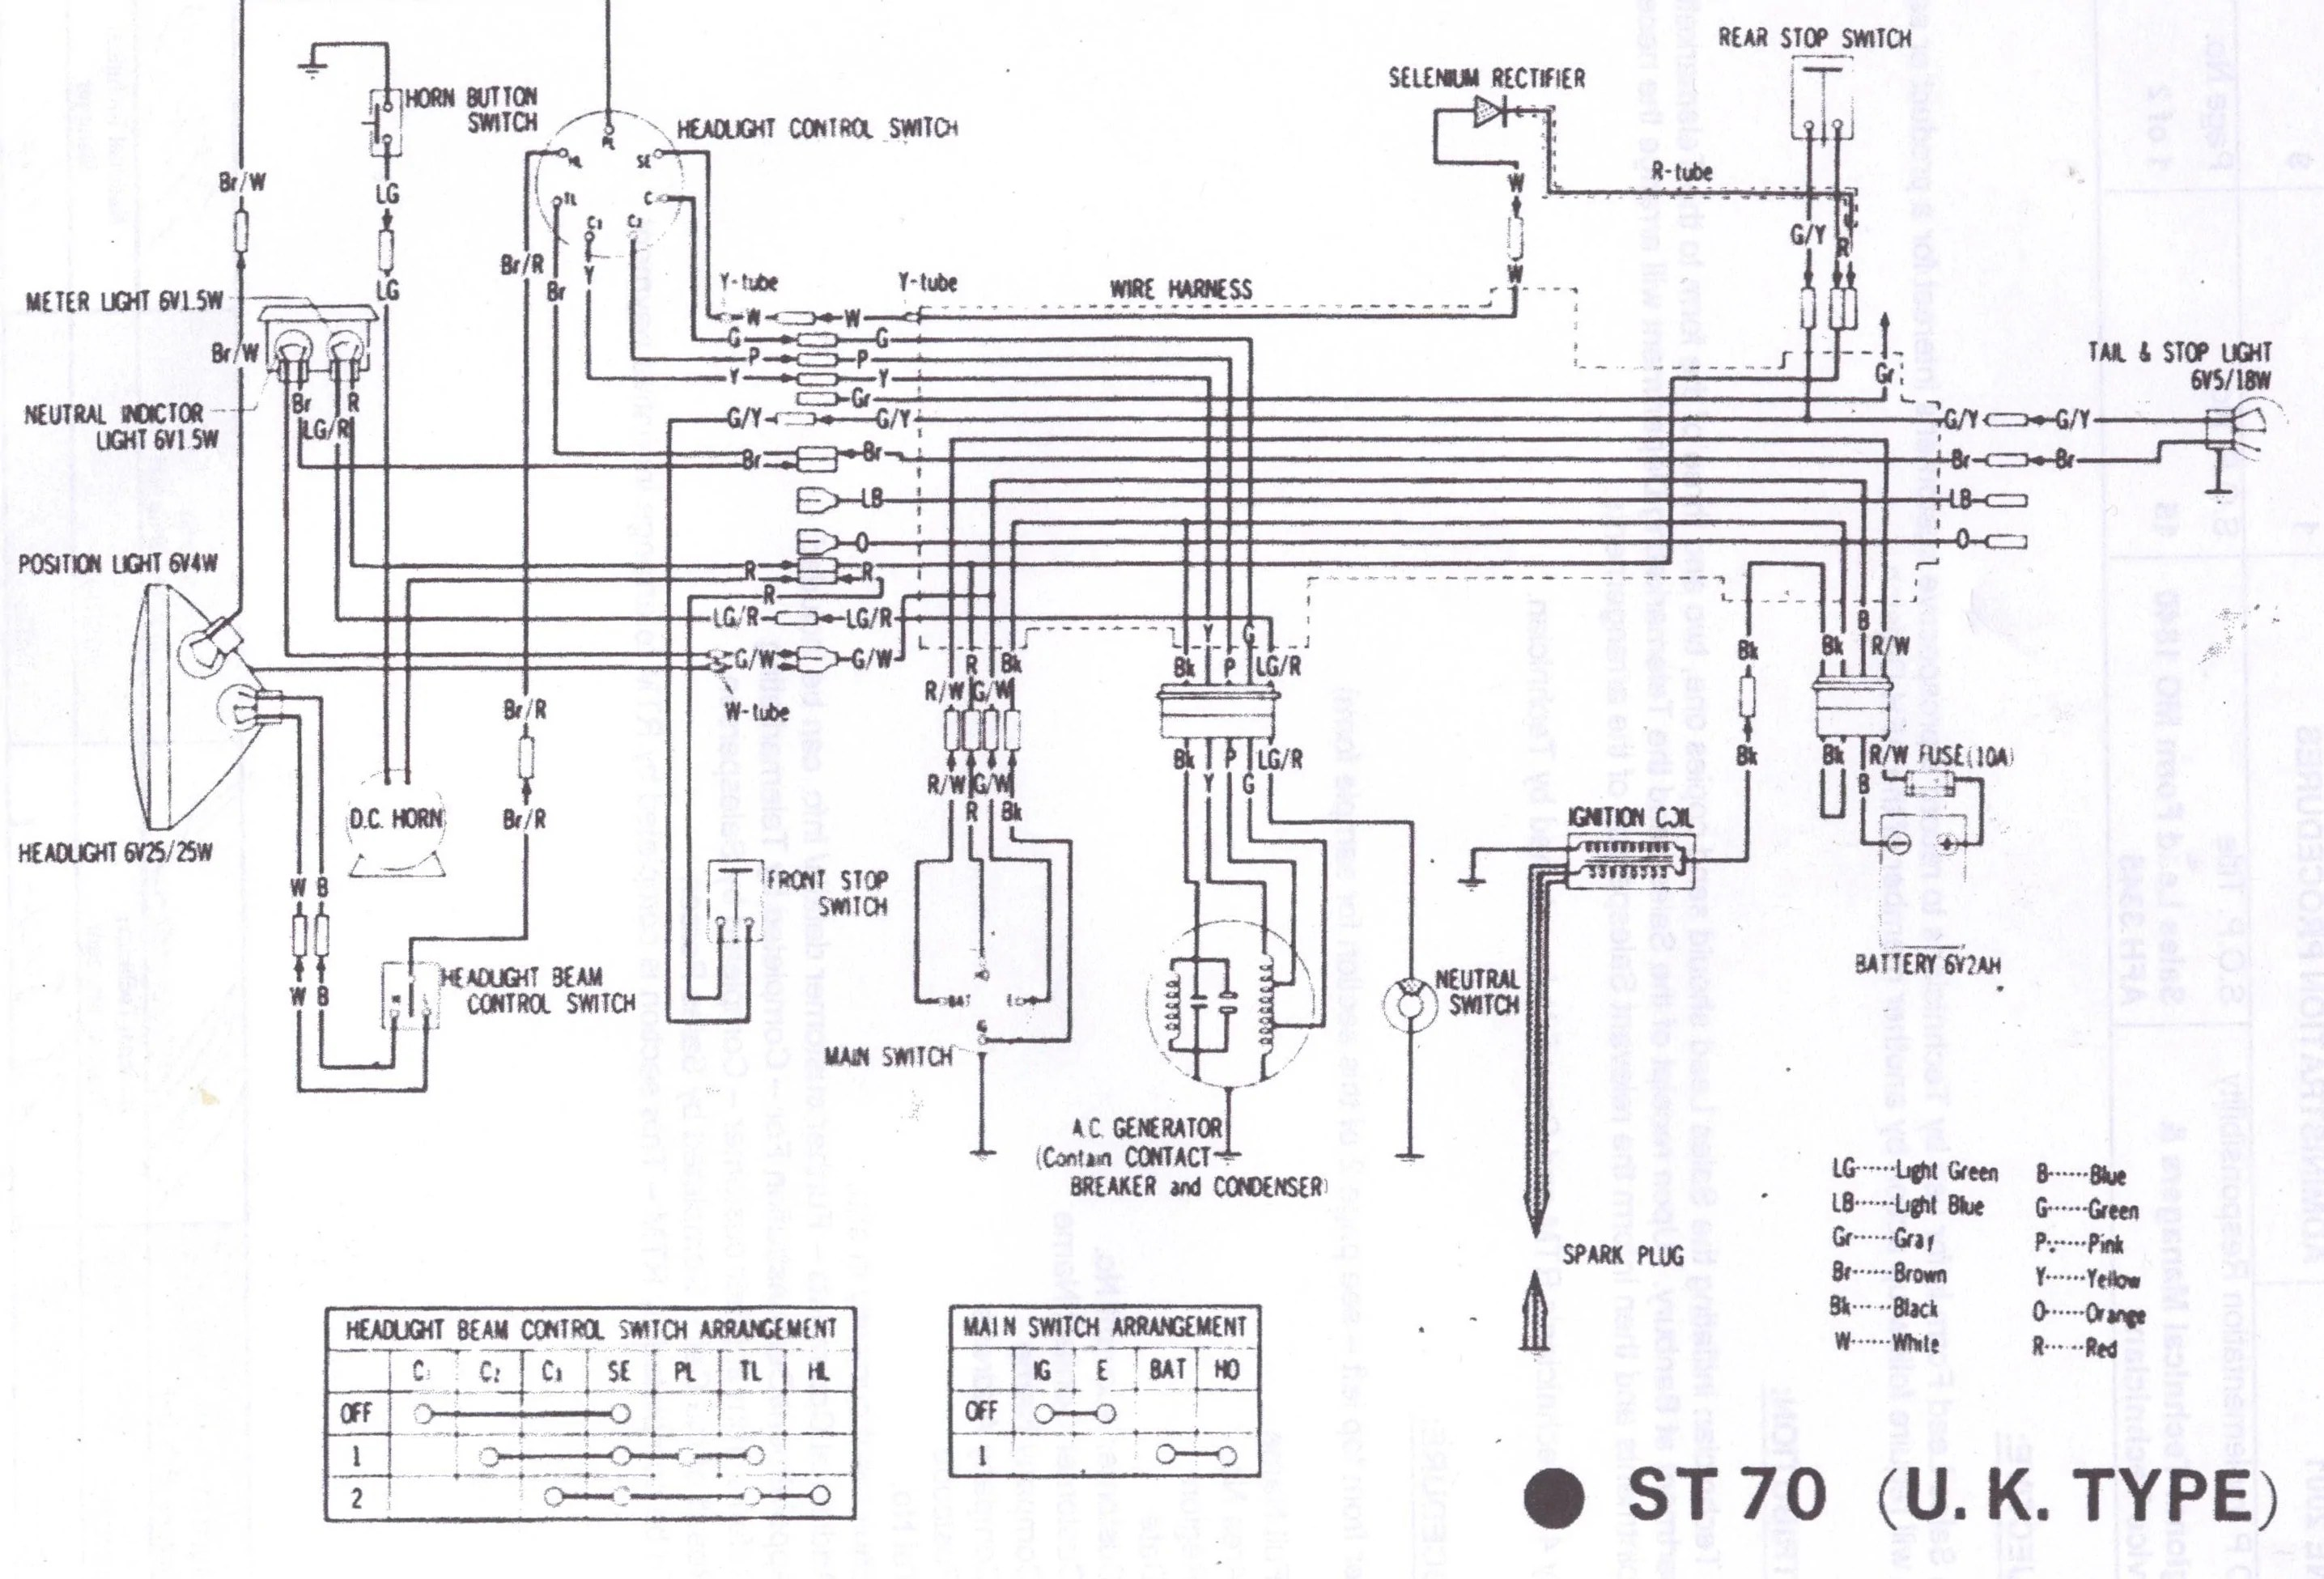 hight resolution of honda dax st70 wiring diagram wiring diagram name honda st70 wiring diagram wiring diagram list honda